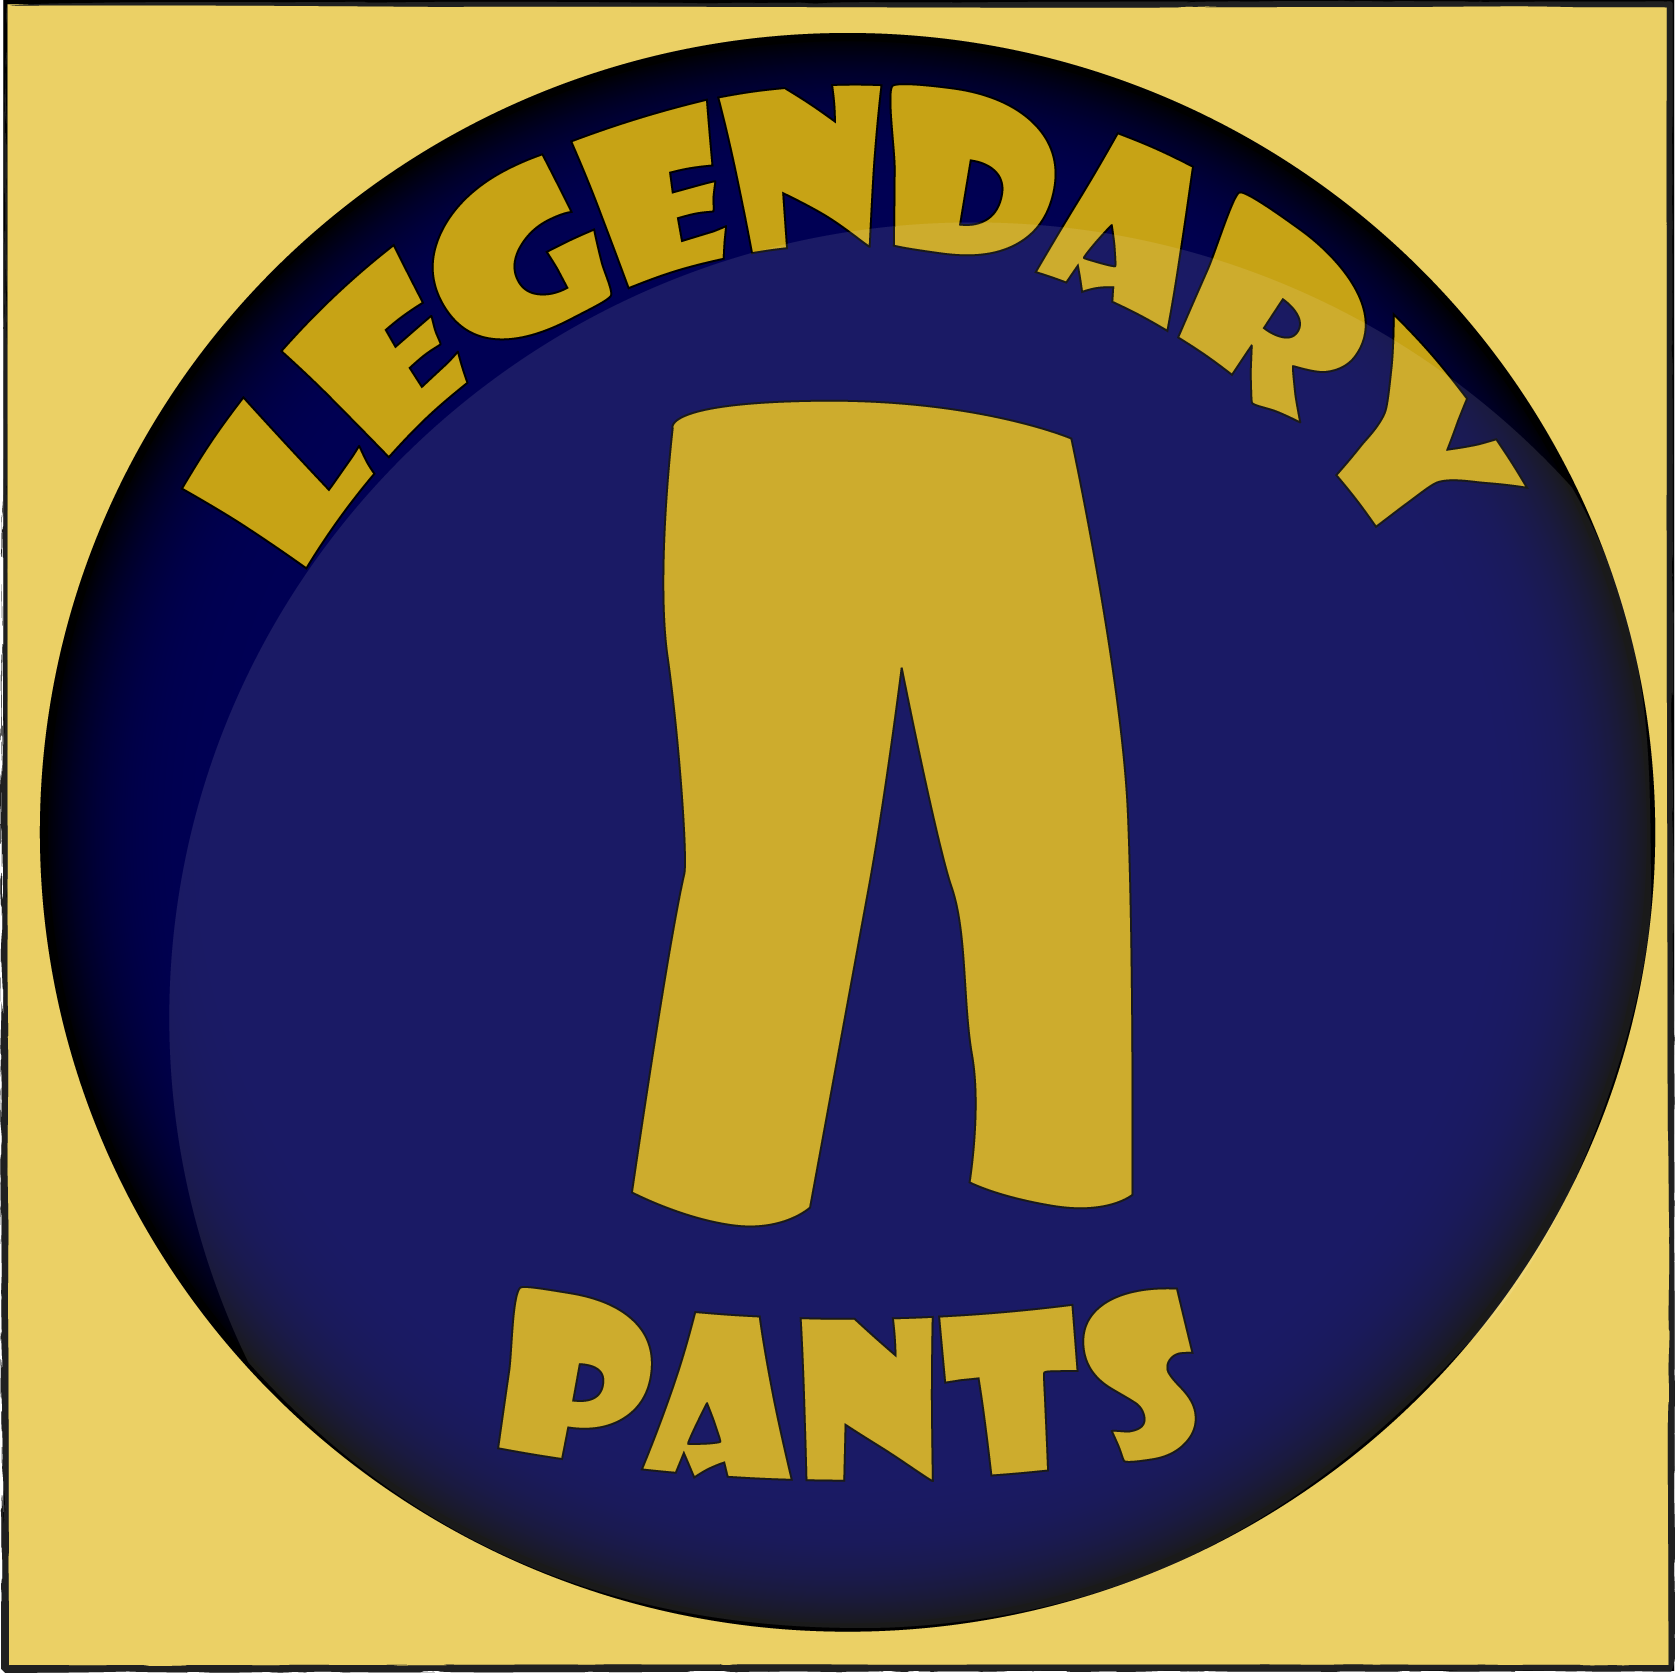 Legendary Pants Book Club